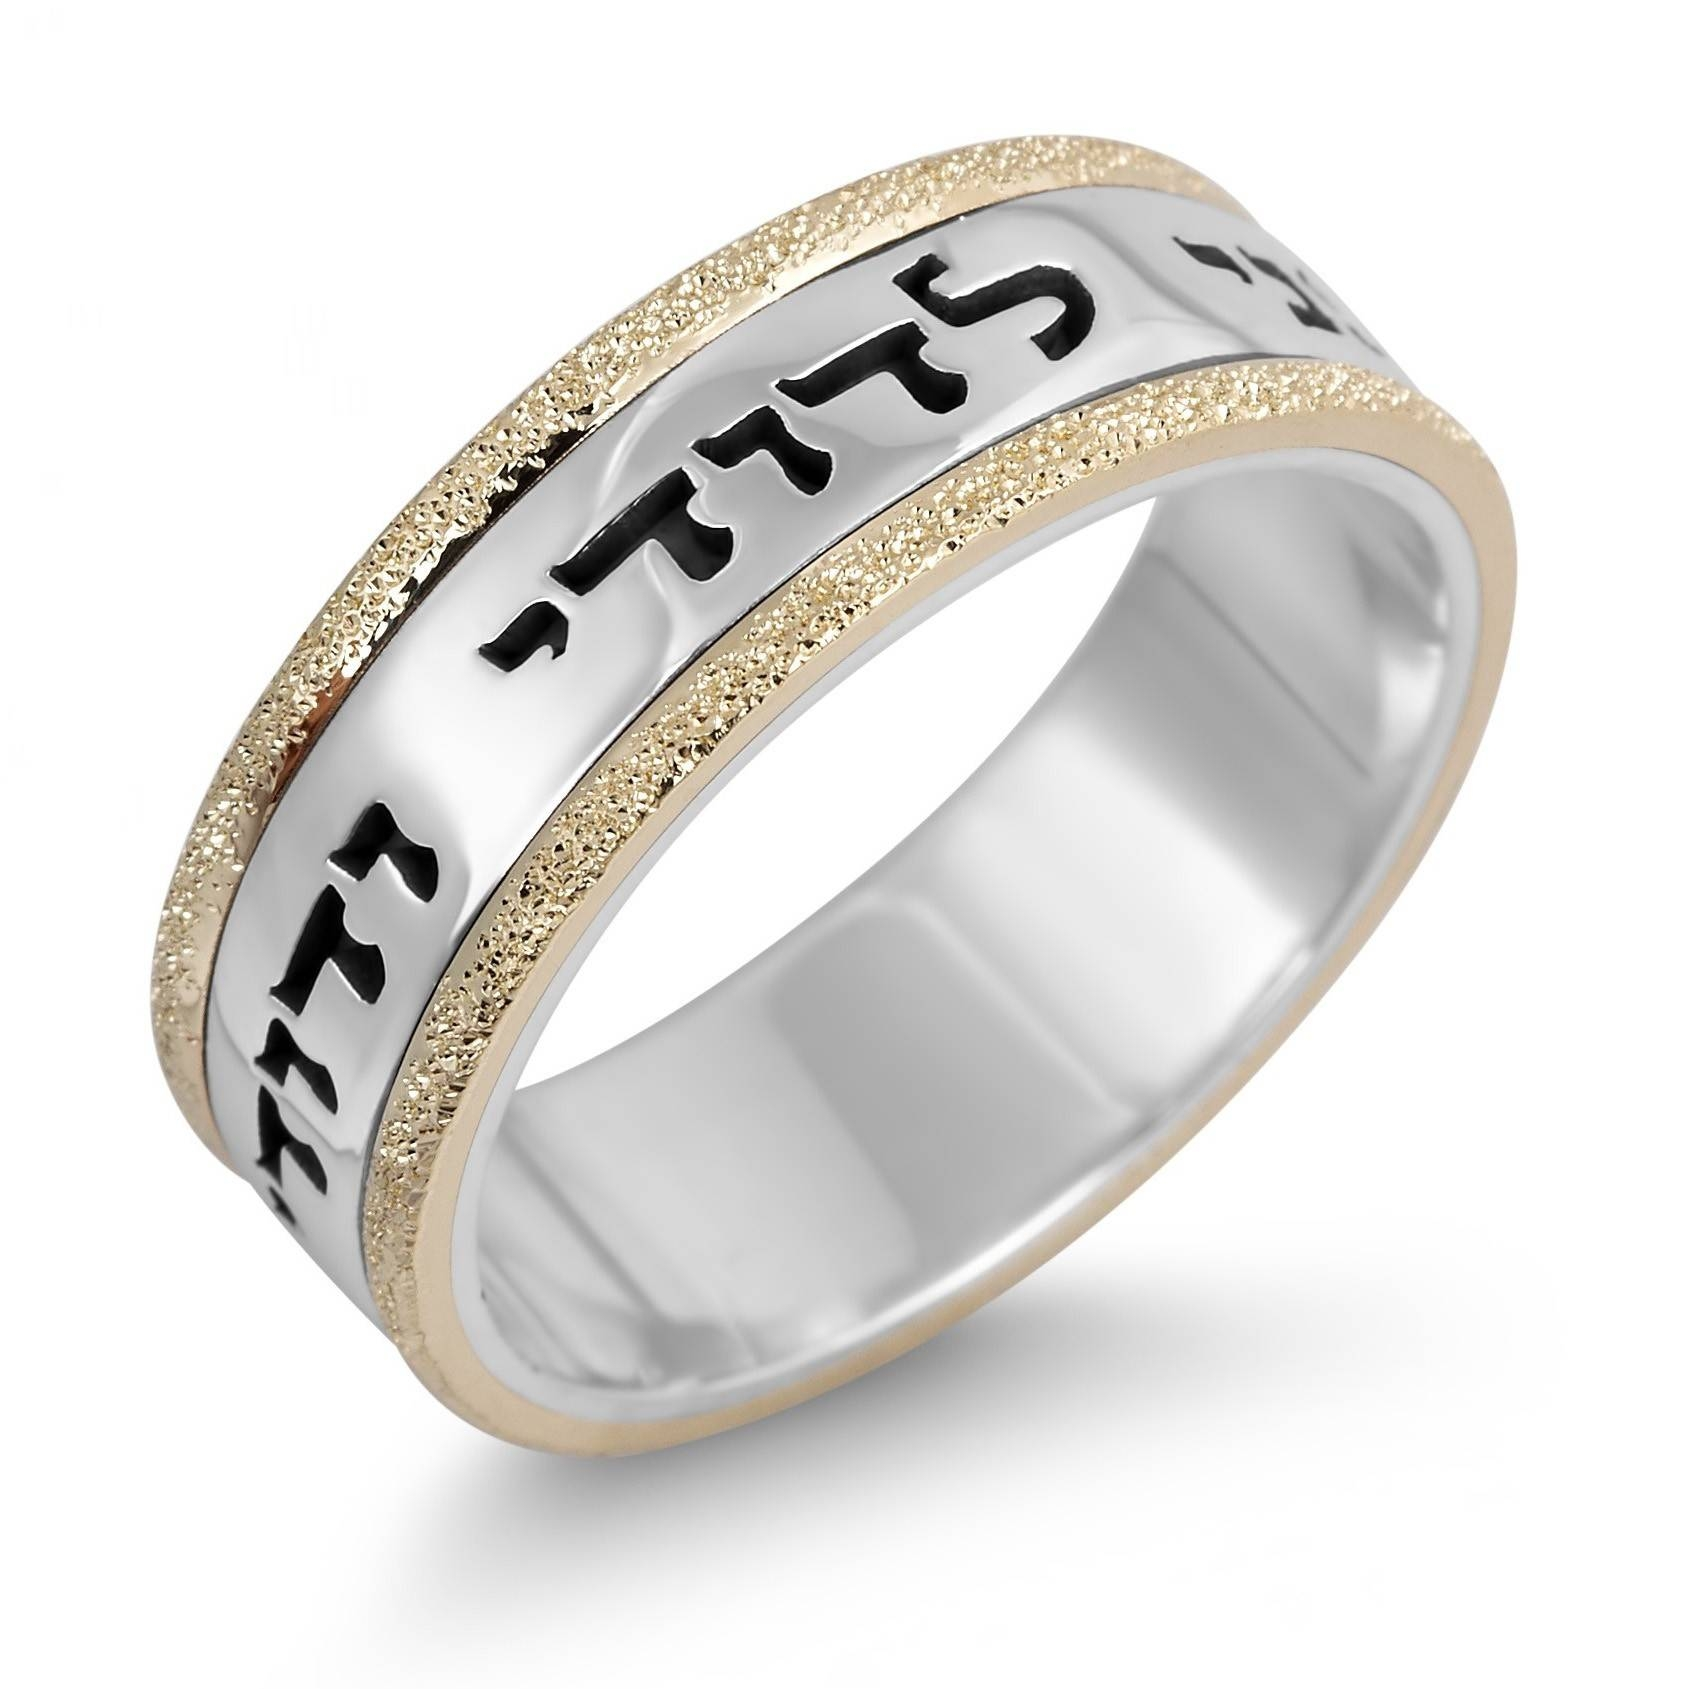 Wedding Rings : Diamond Ring Wonderful Wedding Rings With Name In Wedding Rings With Name Engraved (View 15 of 15)